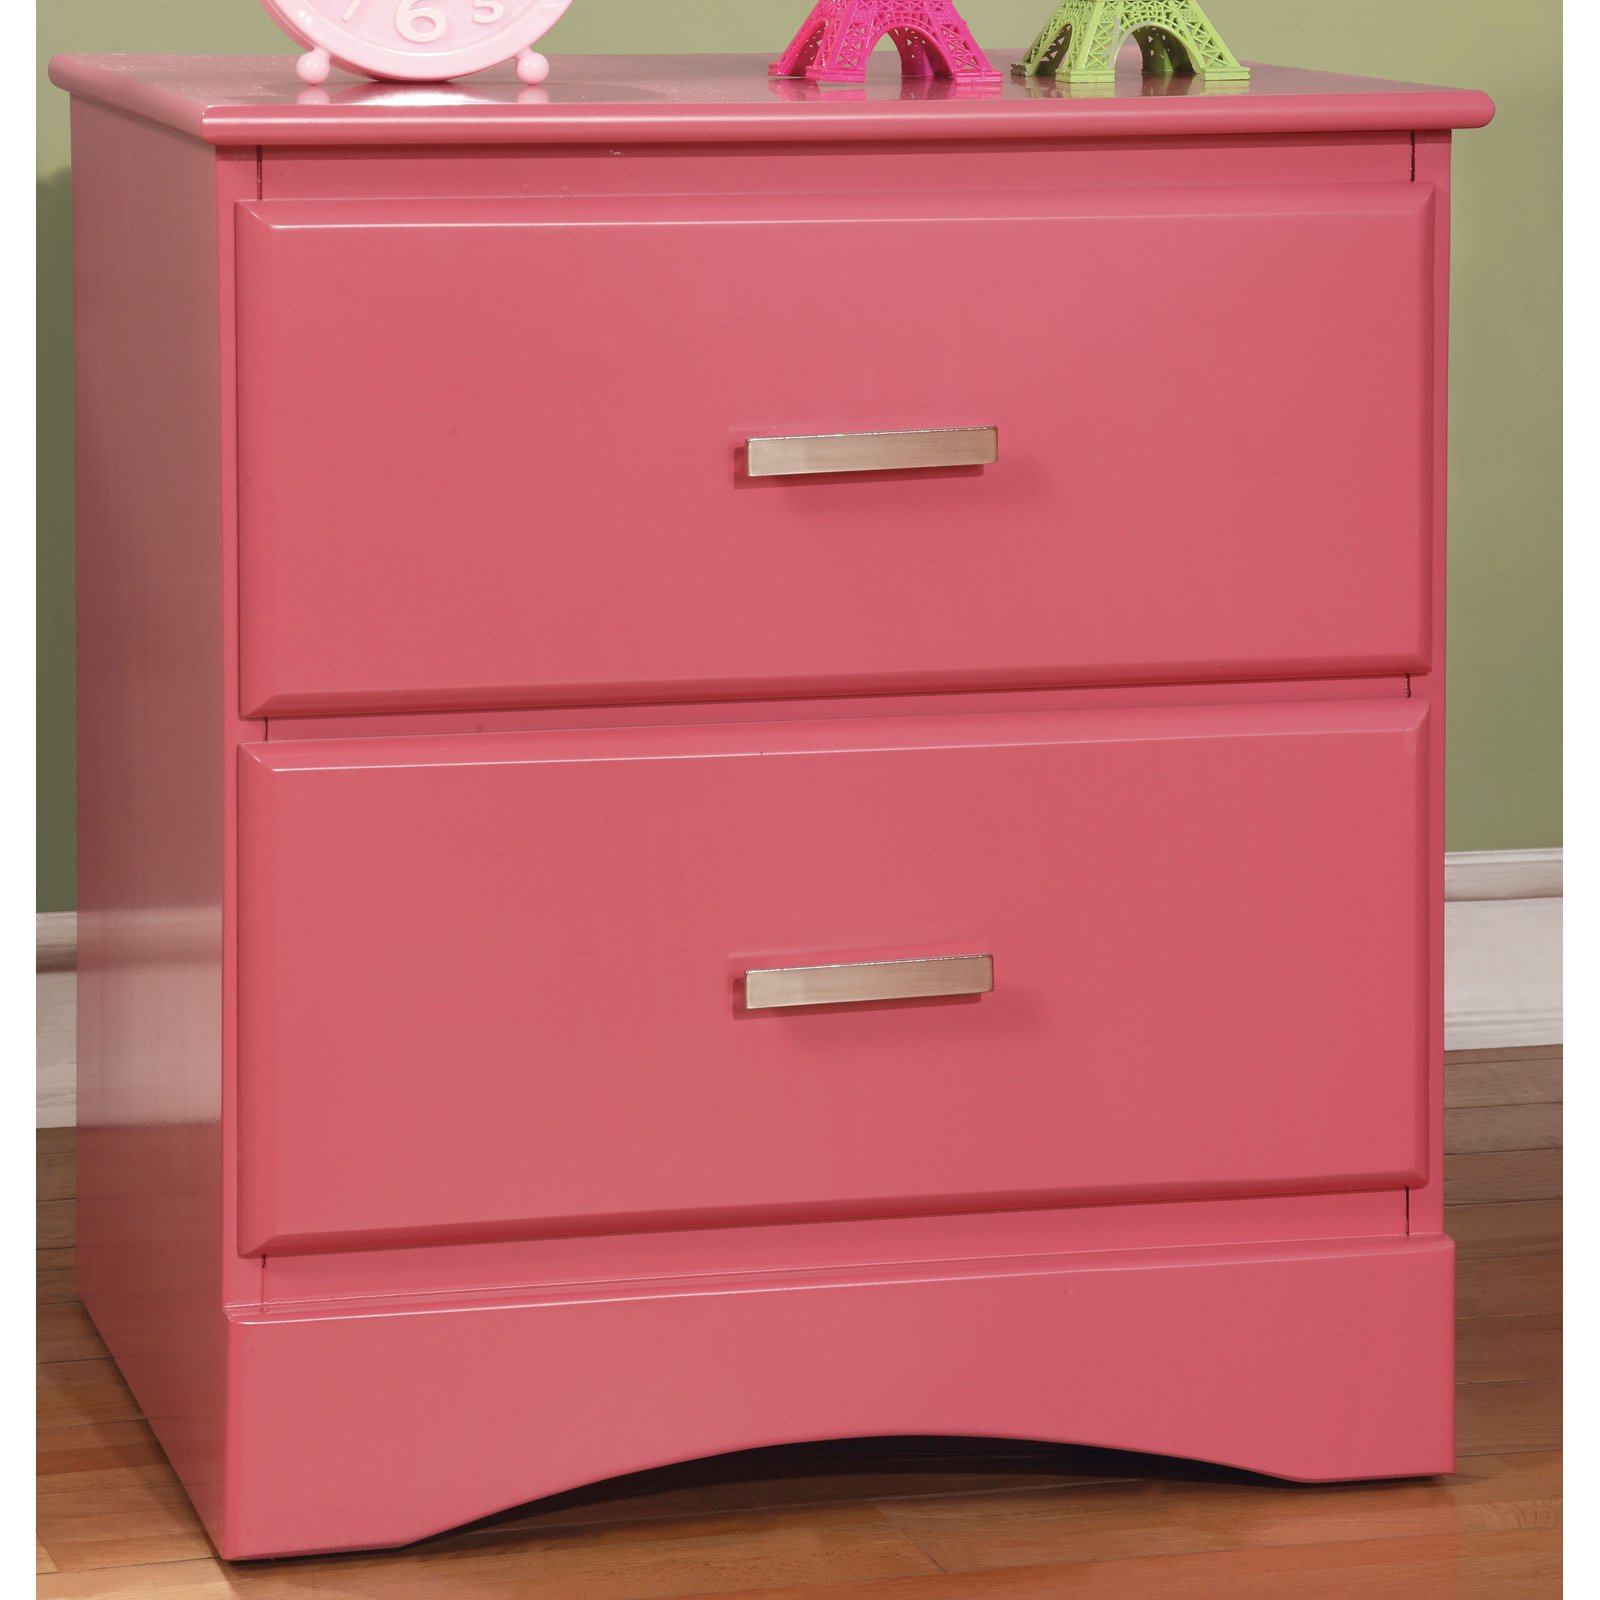 Furniture of America Gaetan Youth Nightstand